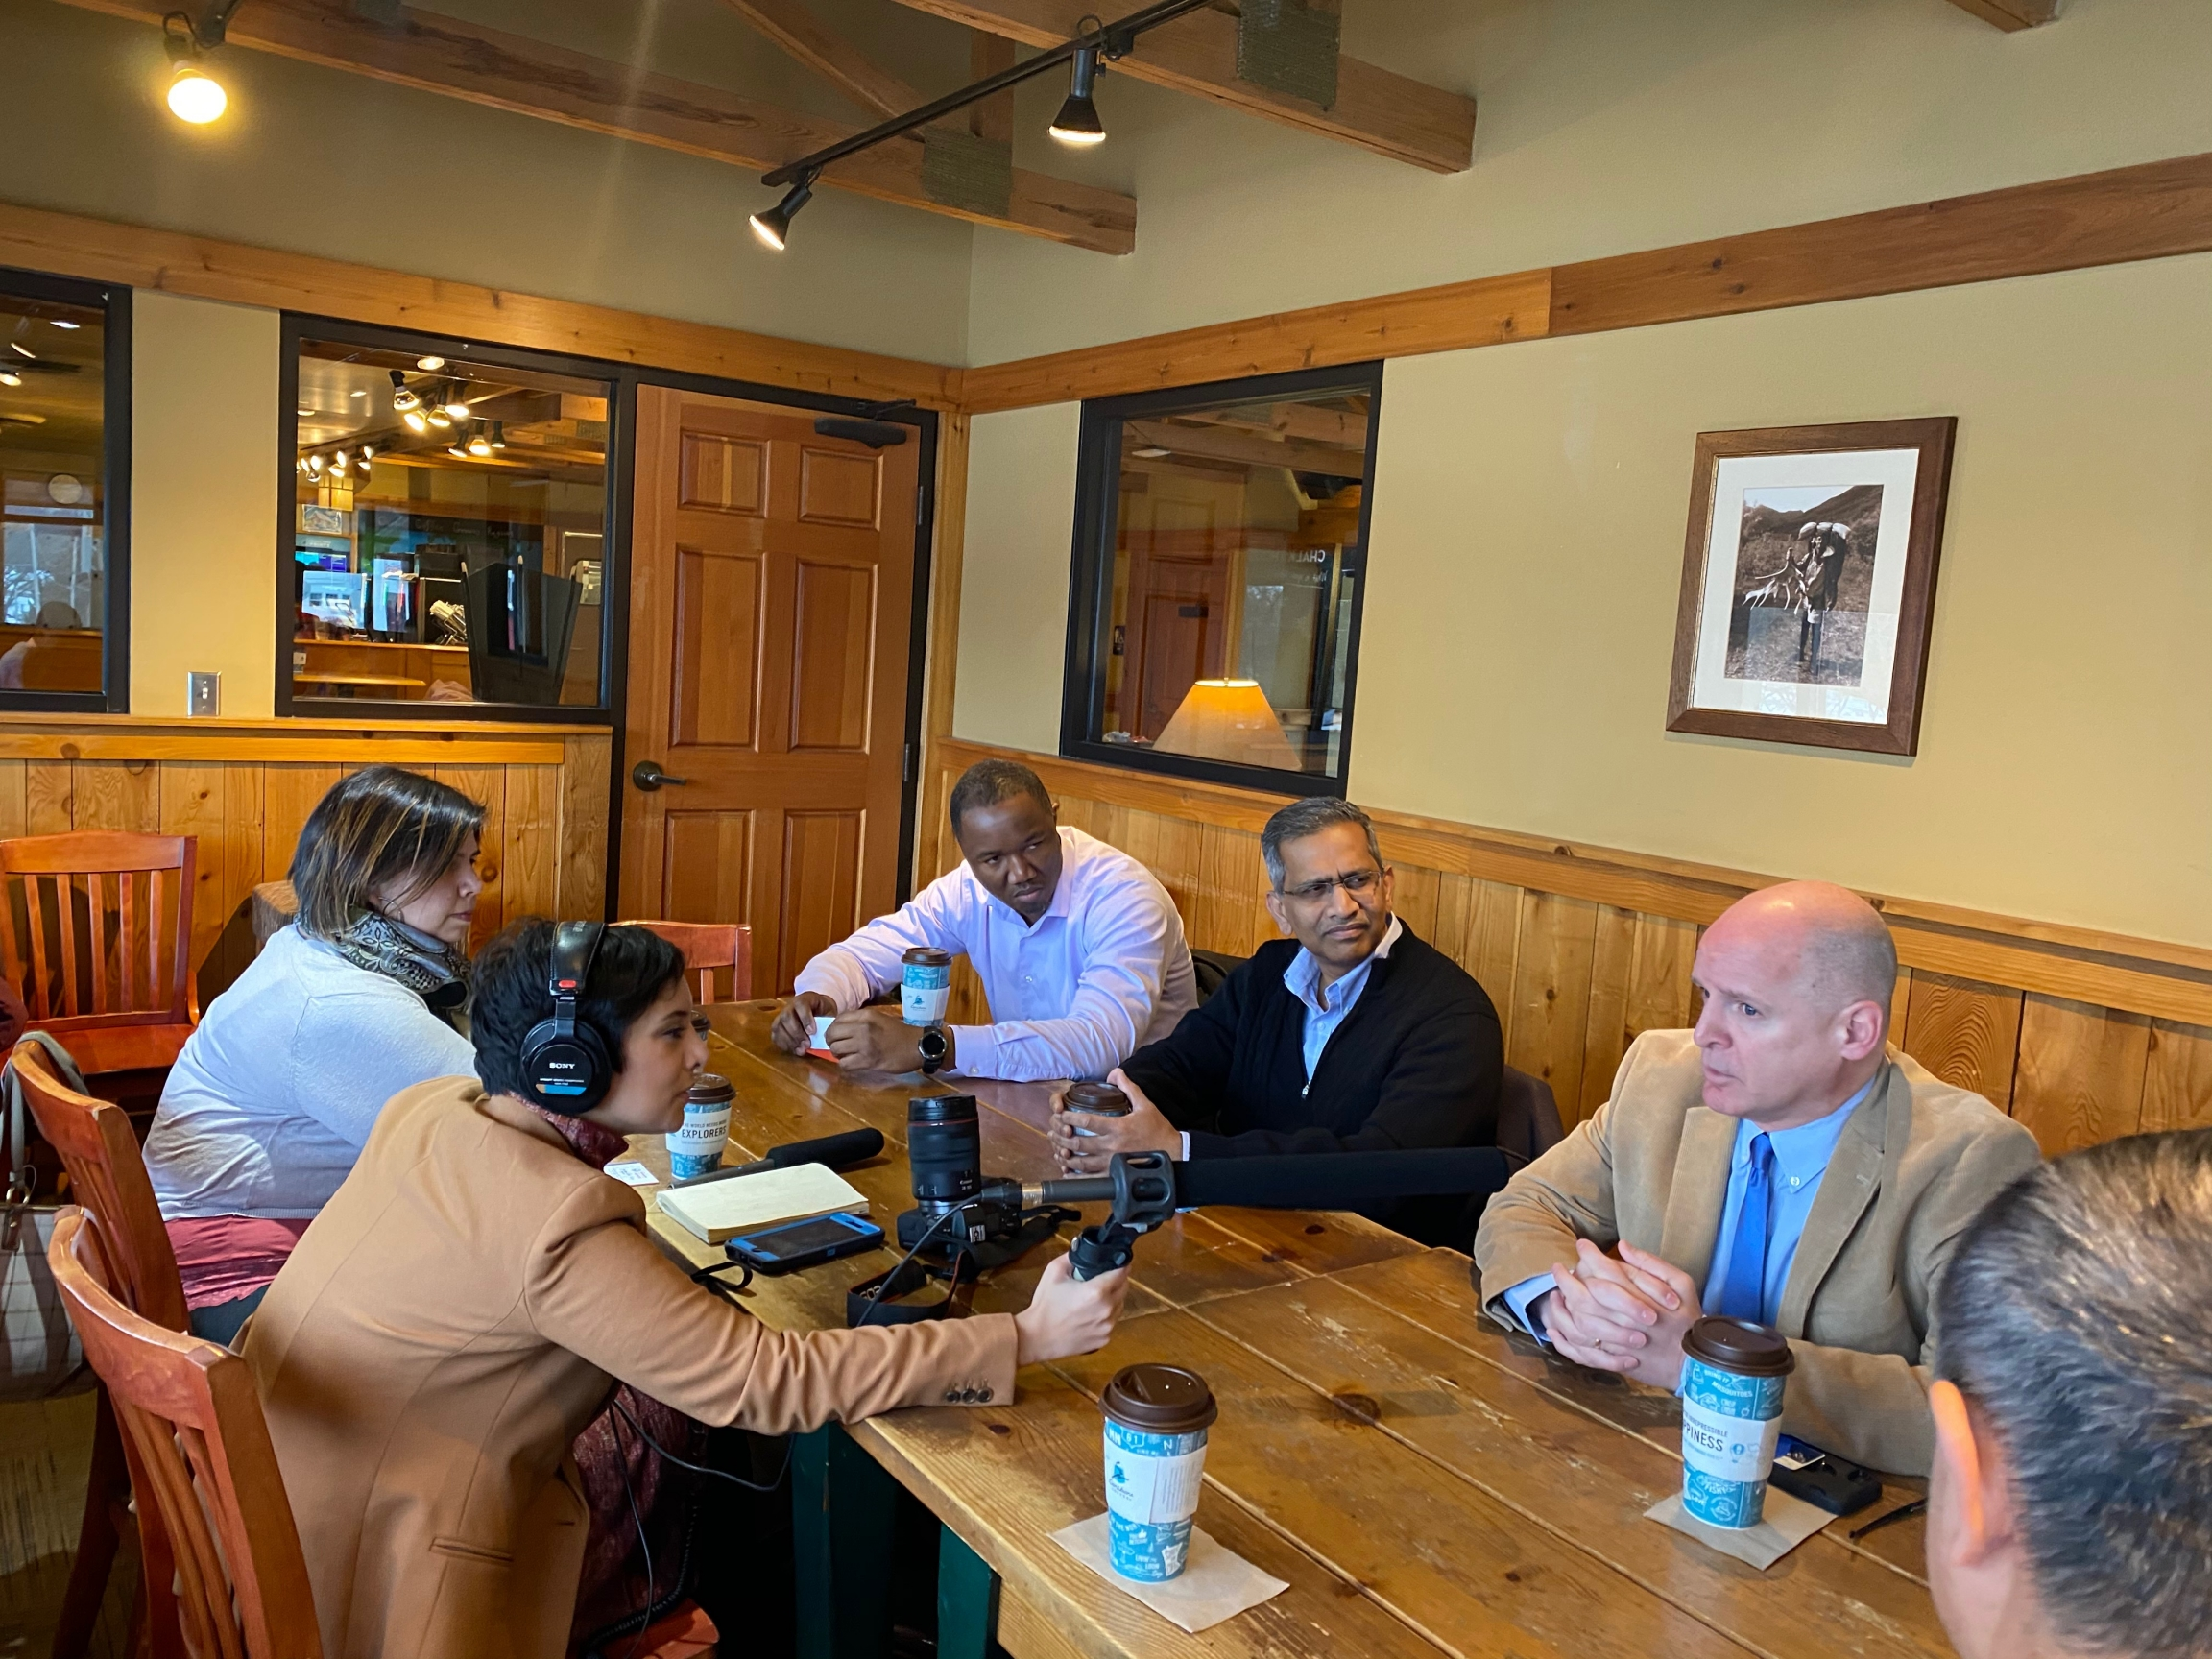 Reporter Rupa Shenoy meets with politically active immigrants and refugees in the back conference room of a Caribou Coffee in Des Moines.